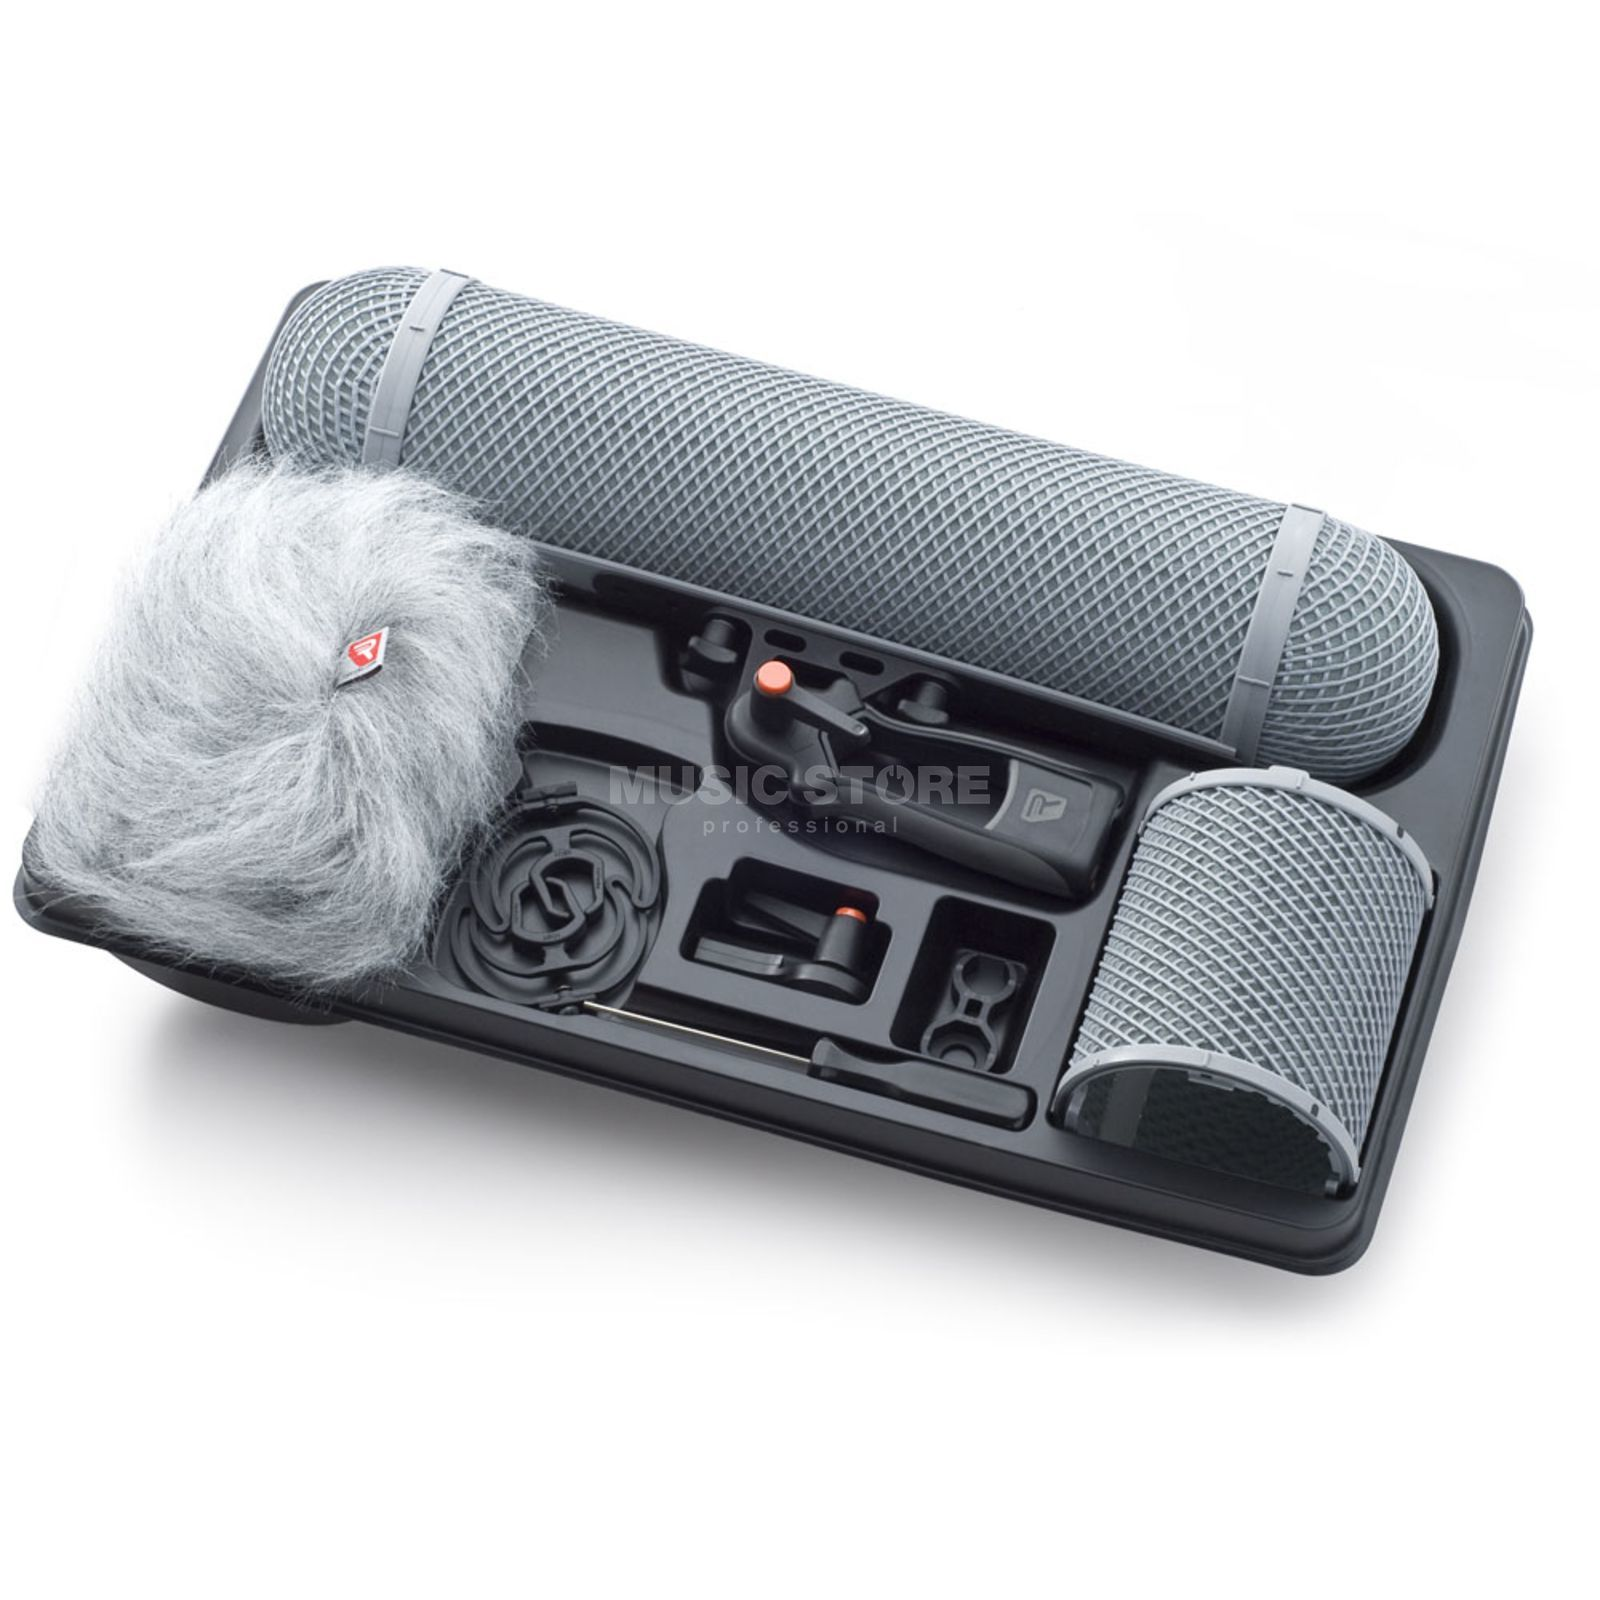 Rycote Modulear Windshield 295 Kit  Produktbillede